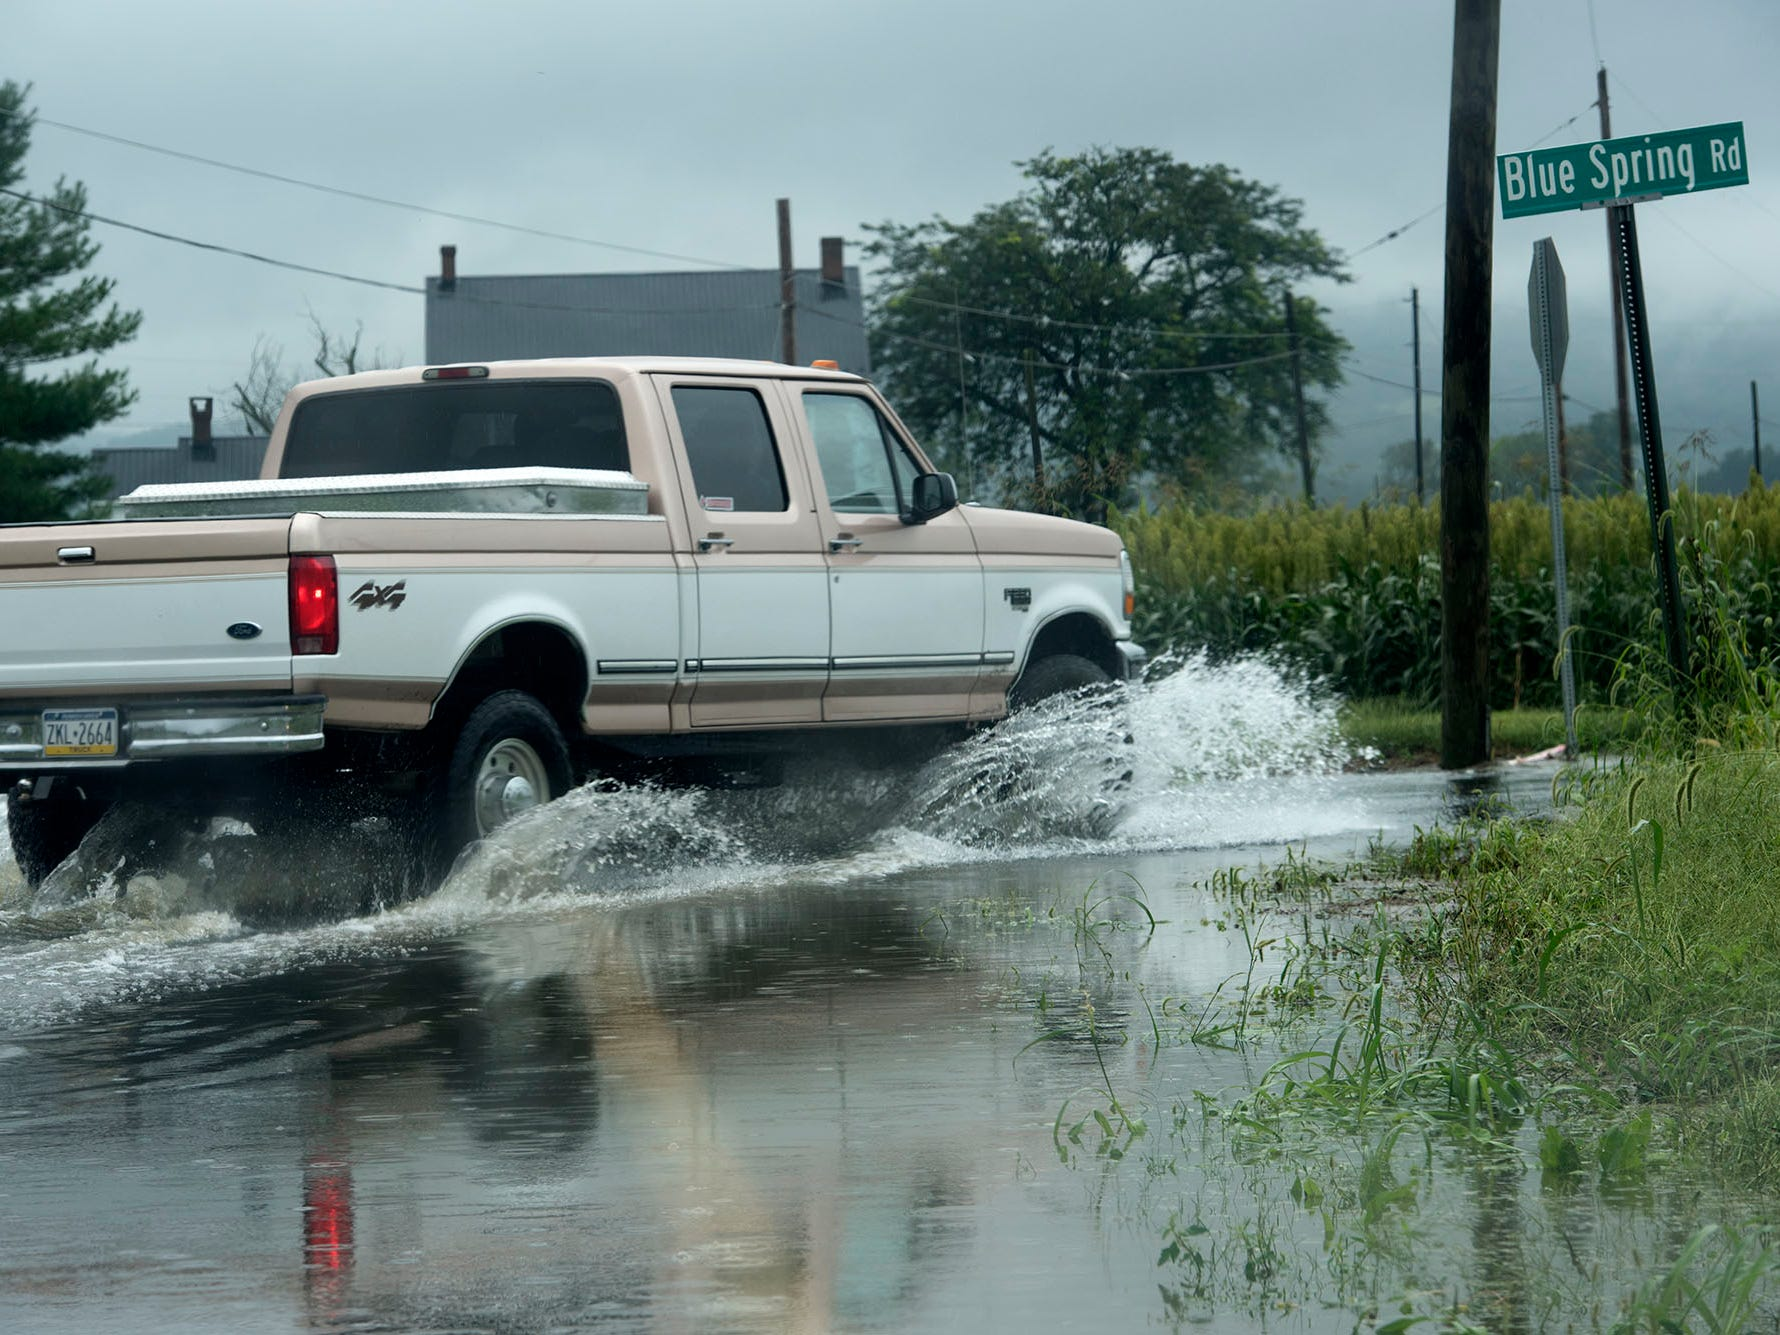 A truck drives through a flooded Corner Road in Mercersburg. A bridge was destroyed and there is street flooding and road closings around Shimpstown Road in the Mercersburg area on Thursday, September 13, 2018.